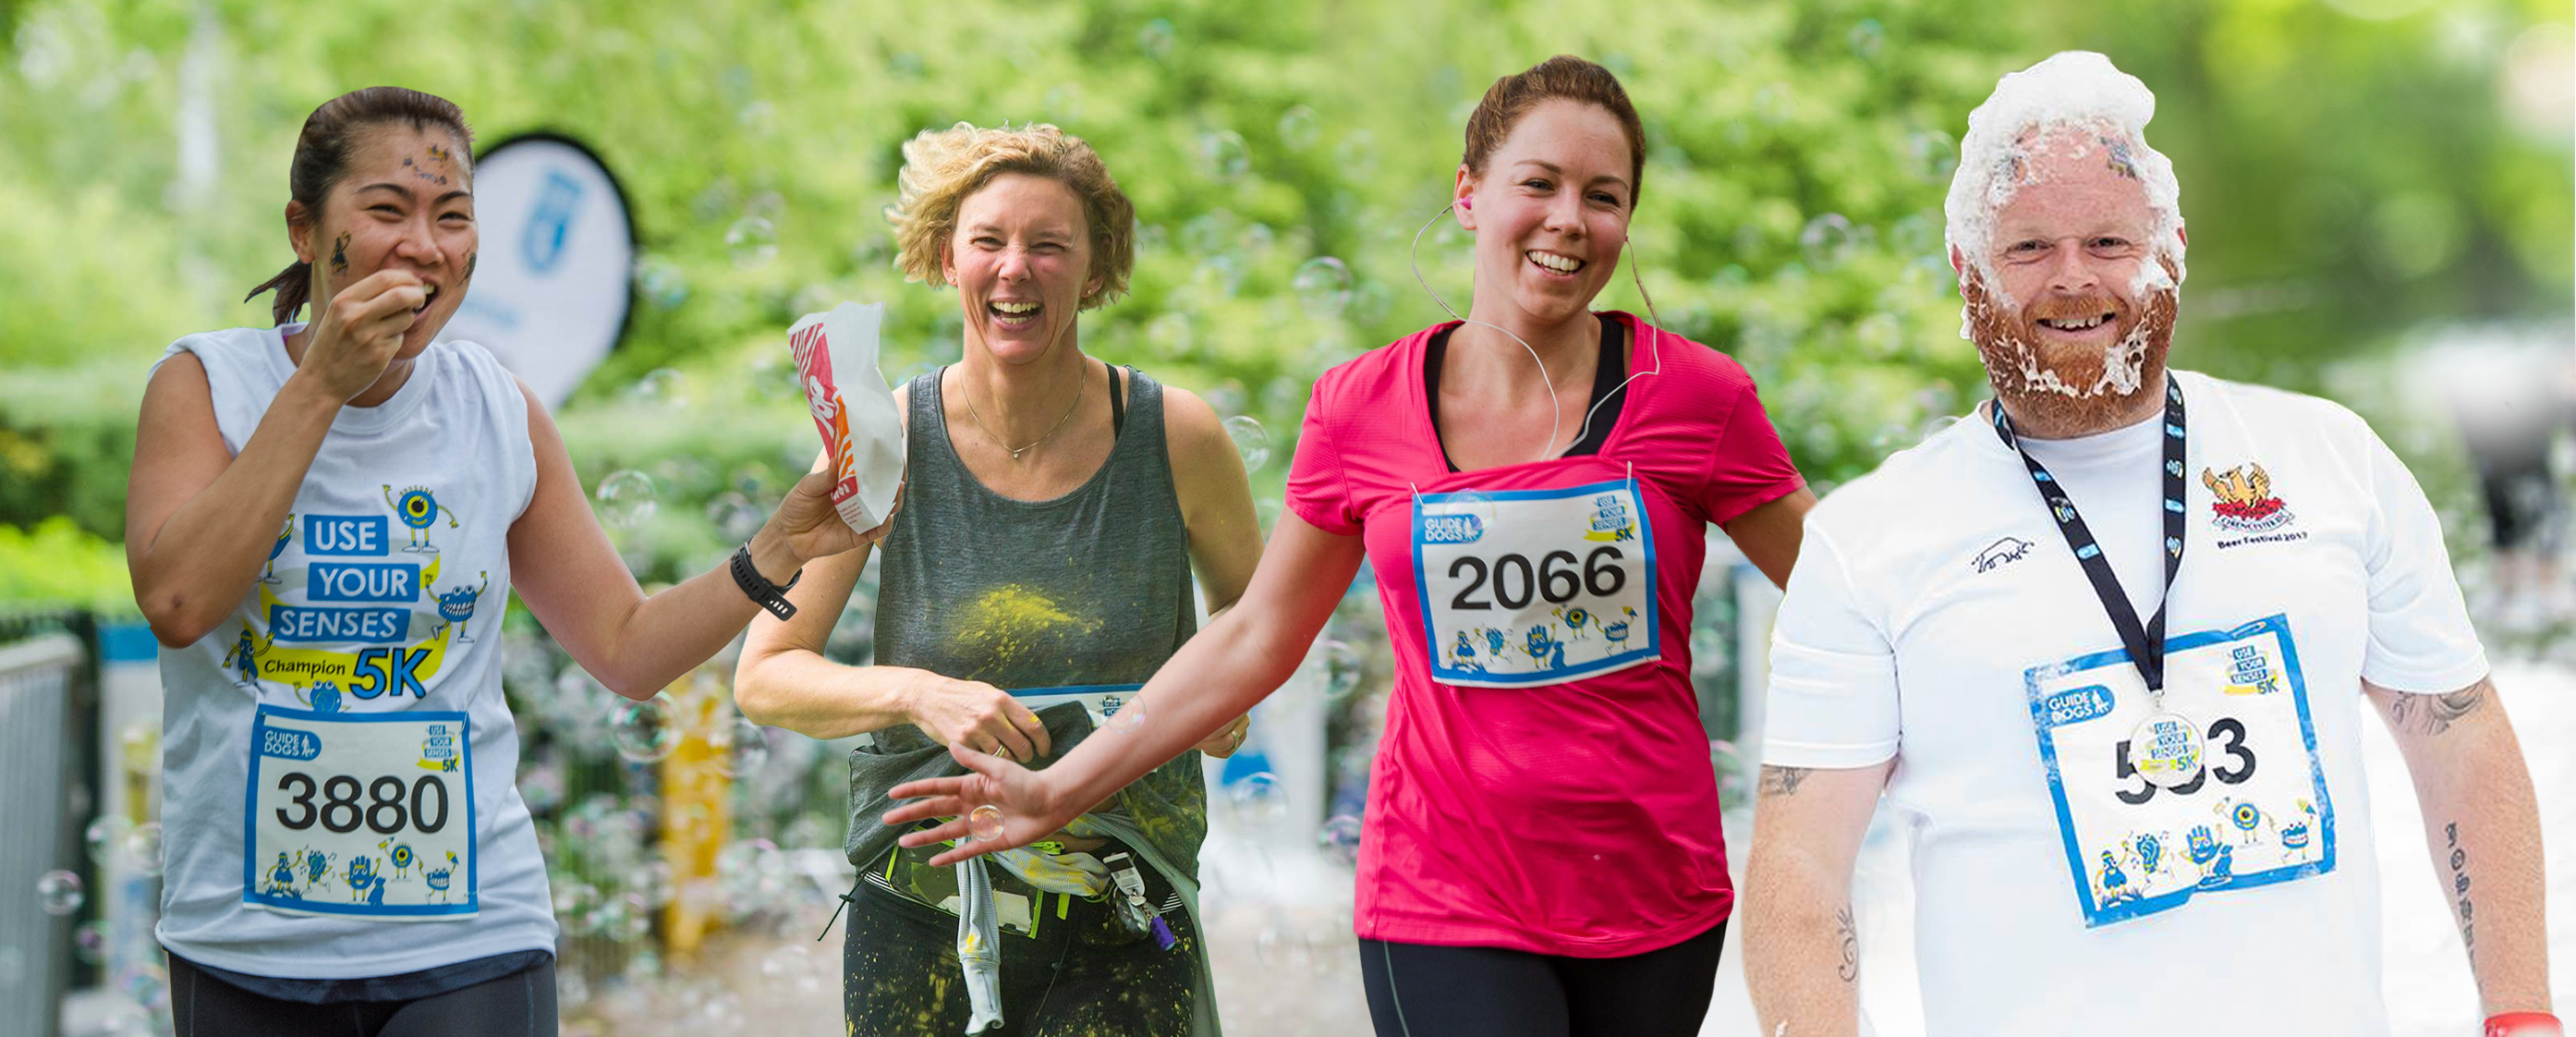 Use Your Senses 5K Manchester